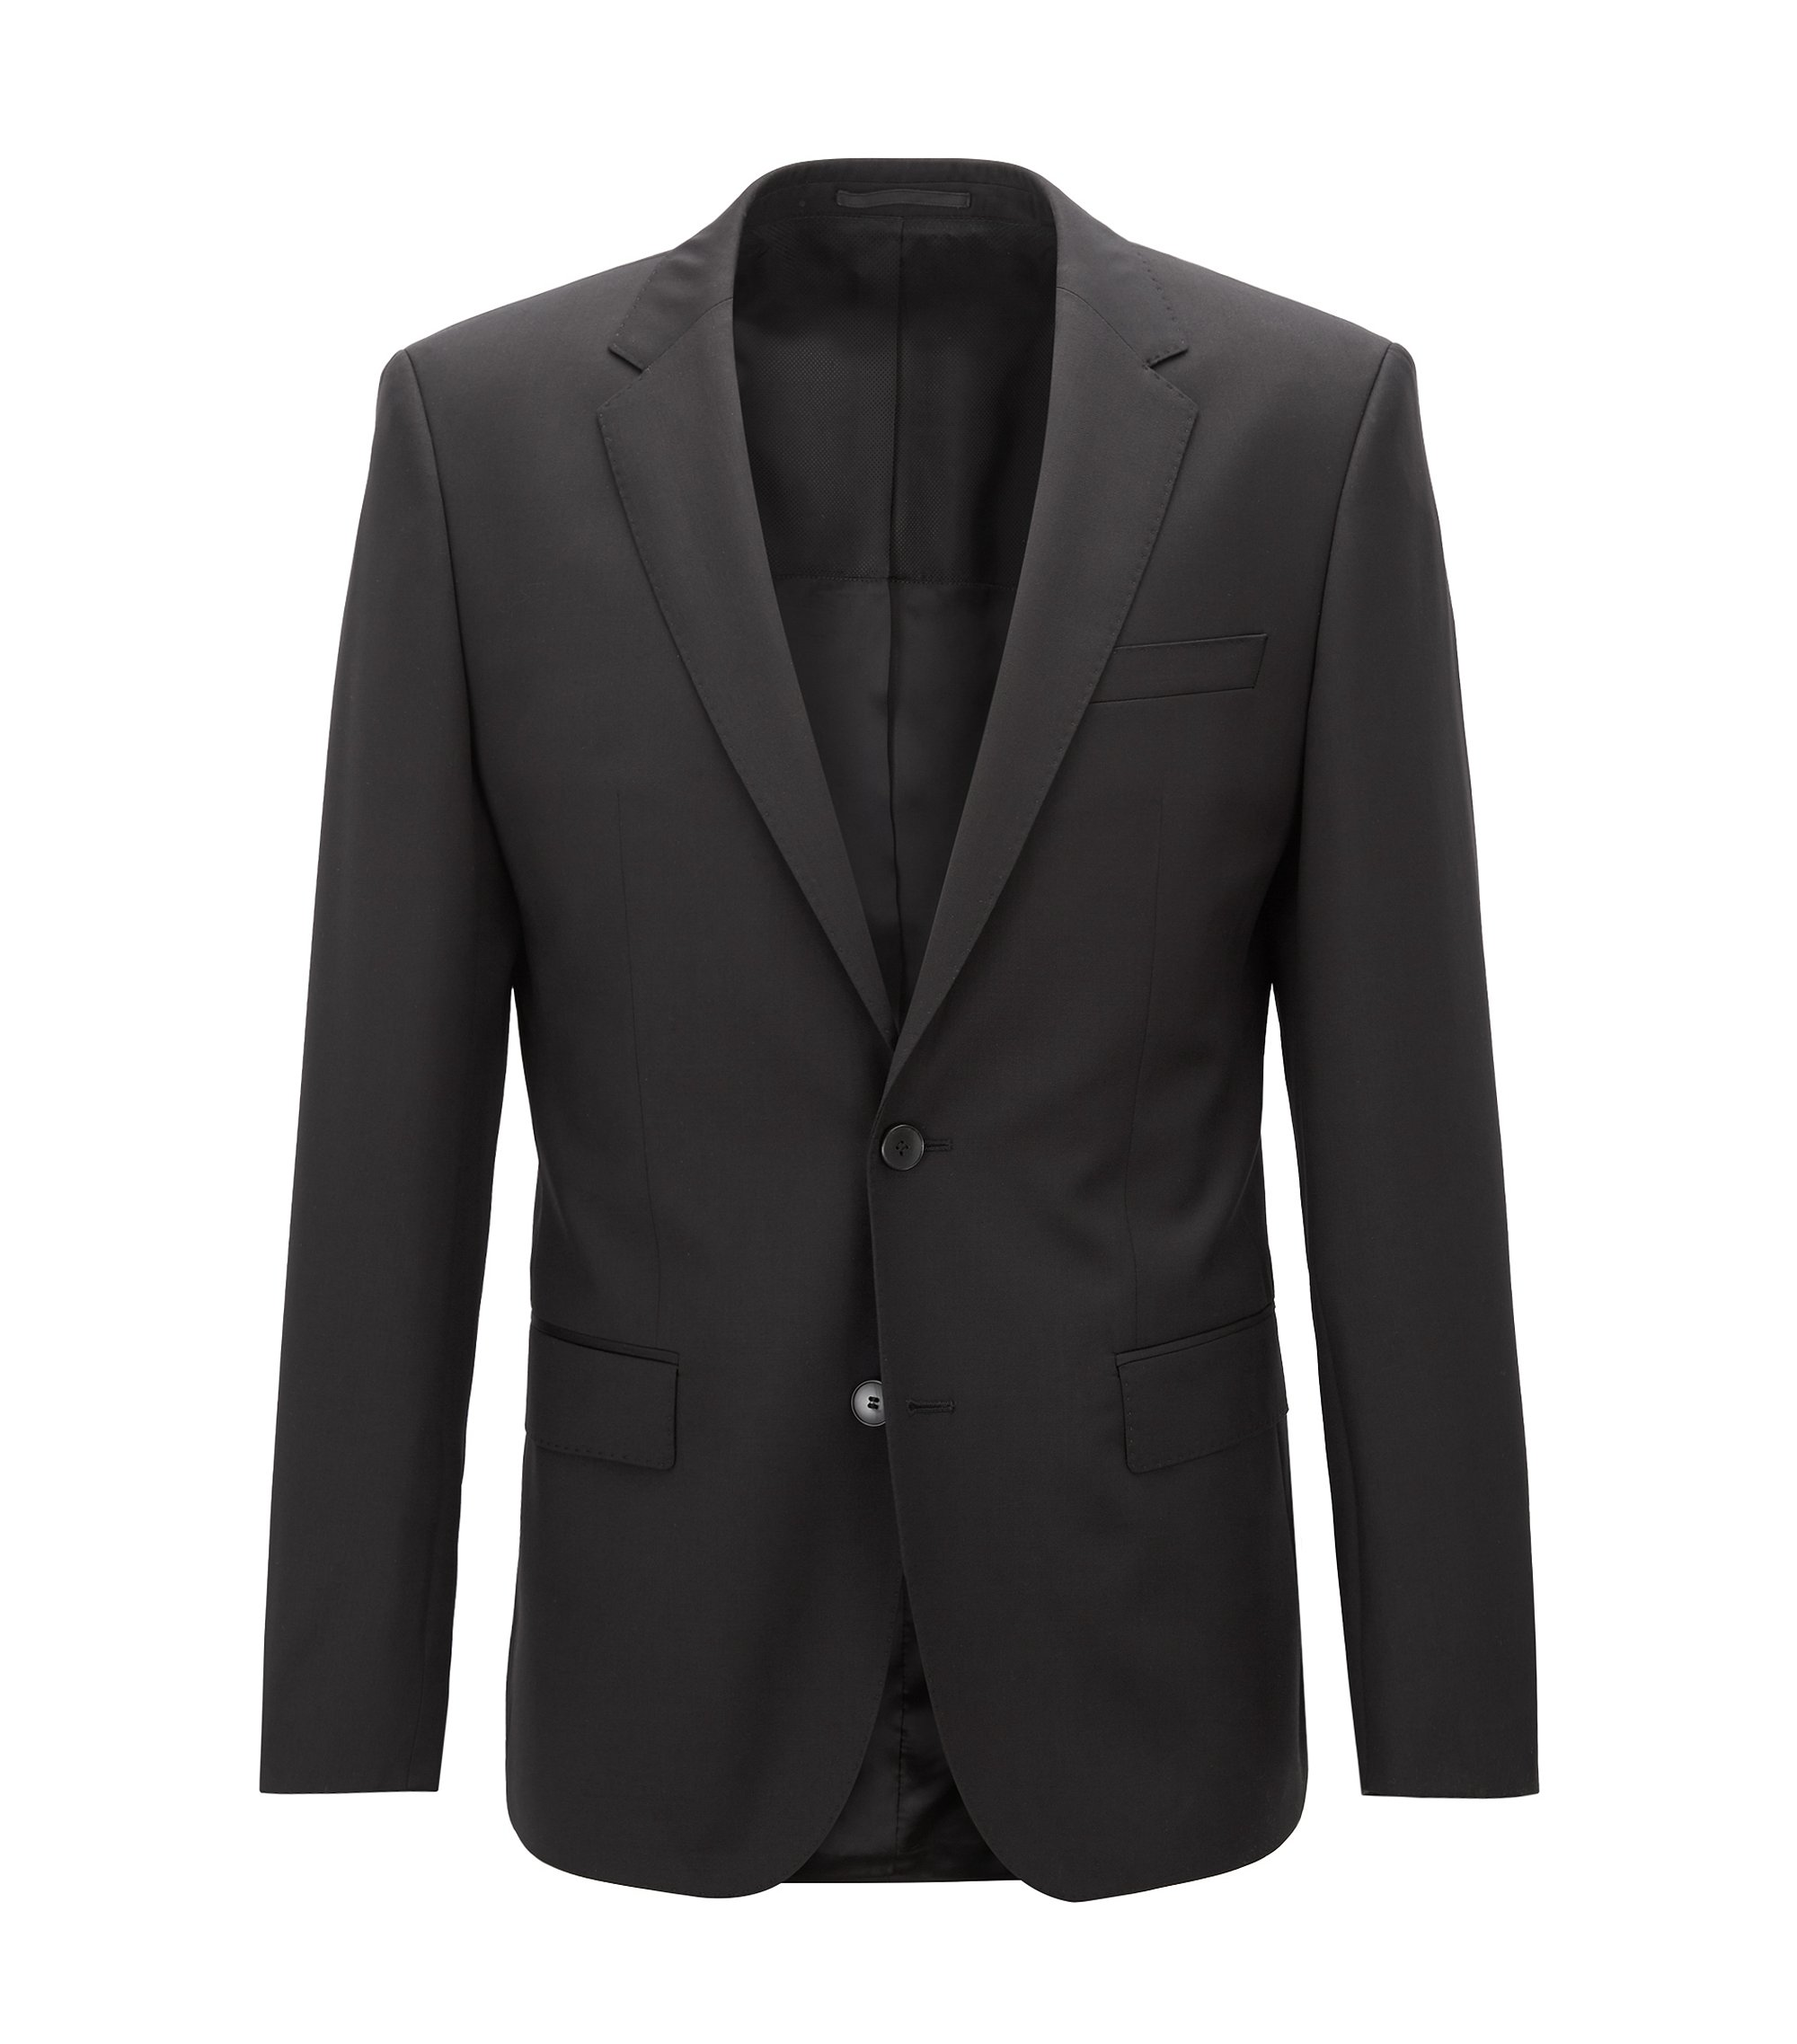 Italian Virgin Wool Sport Coat, Slim Fit | Hayes CYL, Black